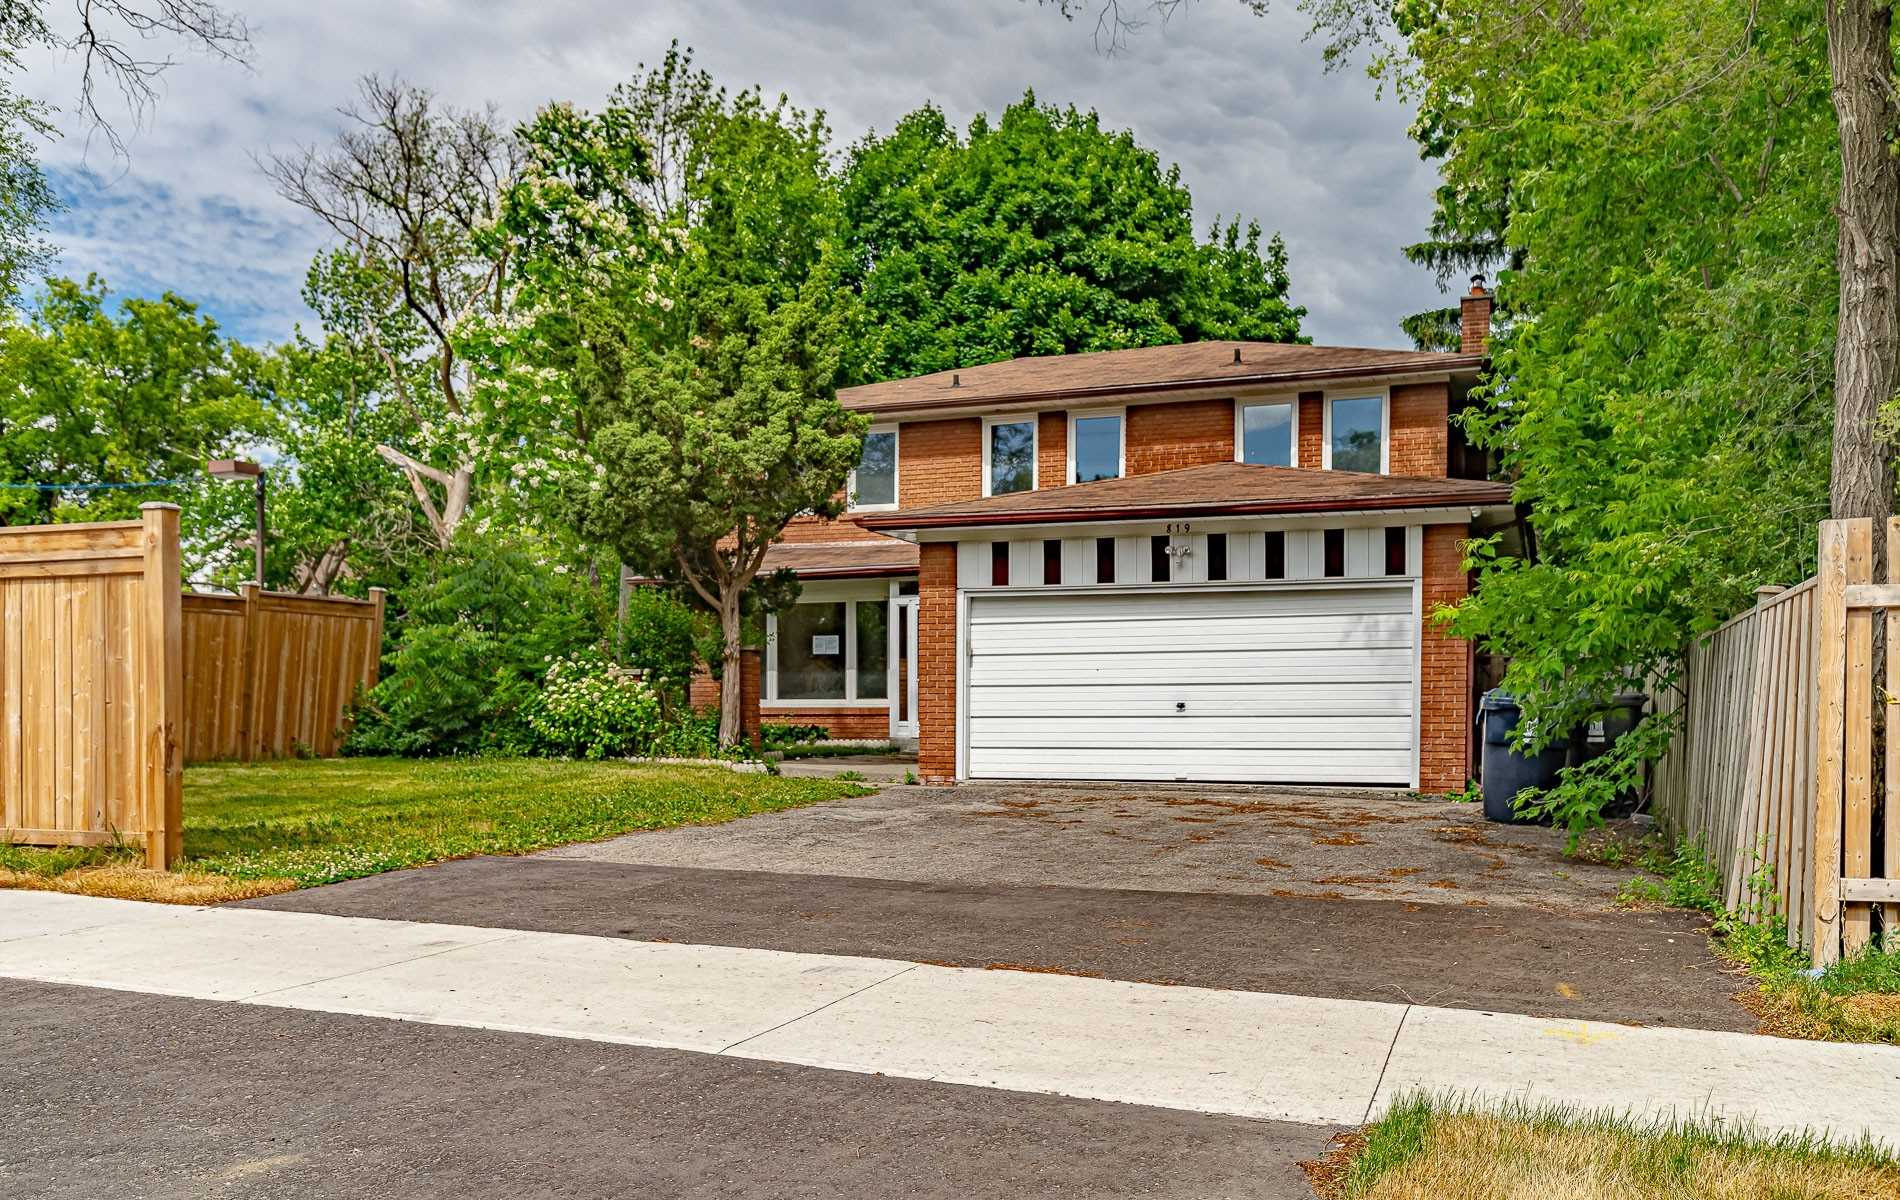 819 Willowdale Ave, Toronto, Ontario M2N5B7, 4 Bedrooms Bedrooms, 8 Rooms Rooms,4 BathroomsBathrooms,Detached,For Sale,Willowdale,C4806918